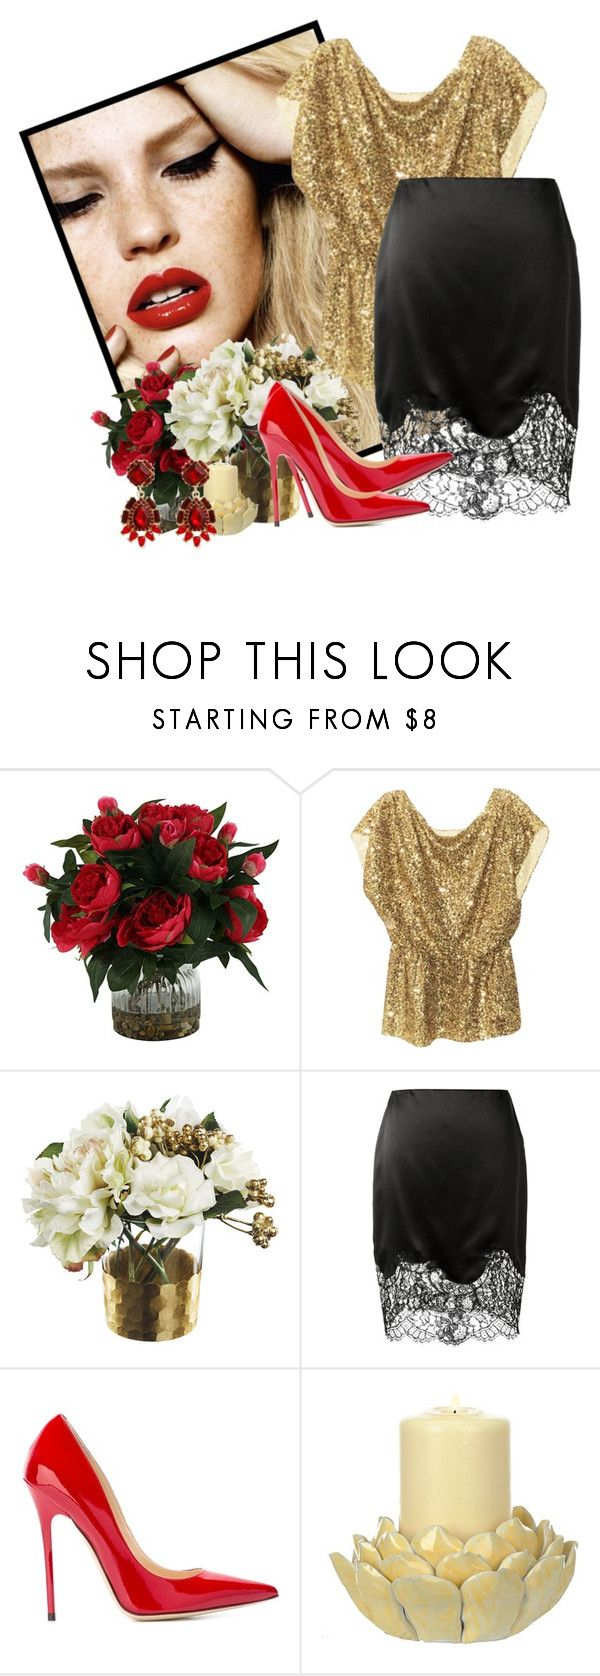 """""""I'm going on up in flames"""" by martinka ❤ liked on Polyvore featuring Alice + Olivia, Givenchy, Jimmy Choo and Erica Lyons"""